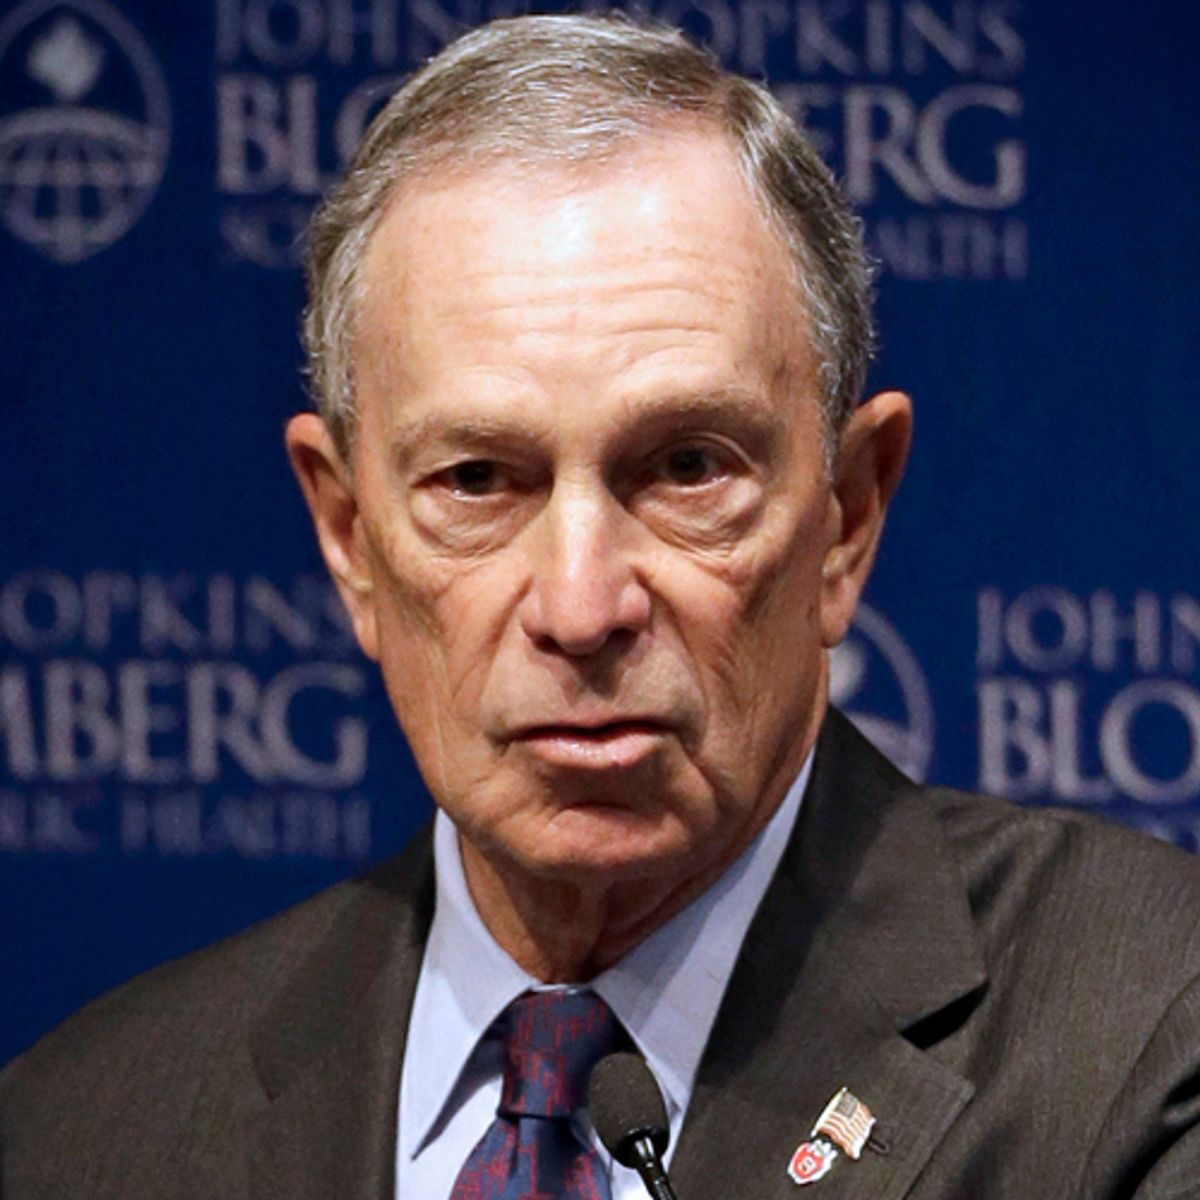 How Mike Bloomberg Called In Favors To Help Contain His Shocking Stop & Frisk Comments